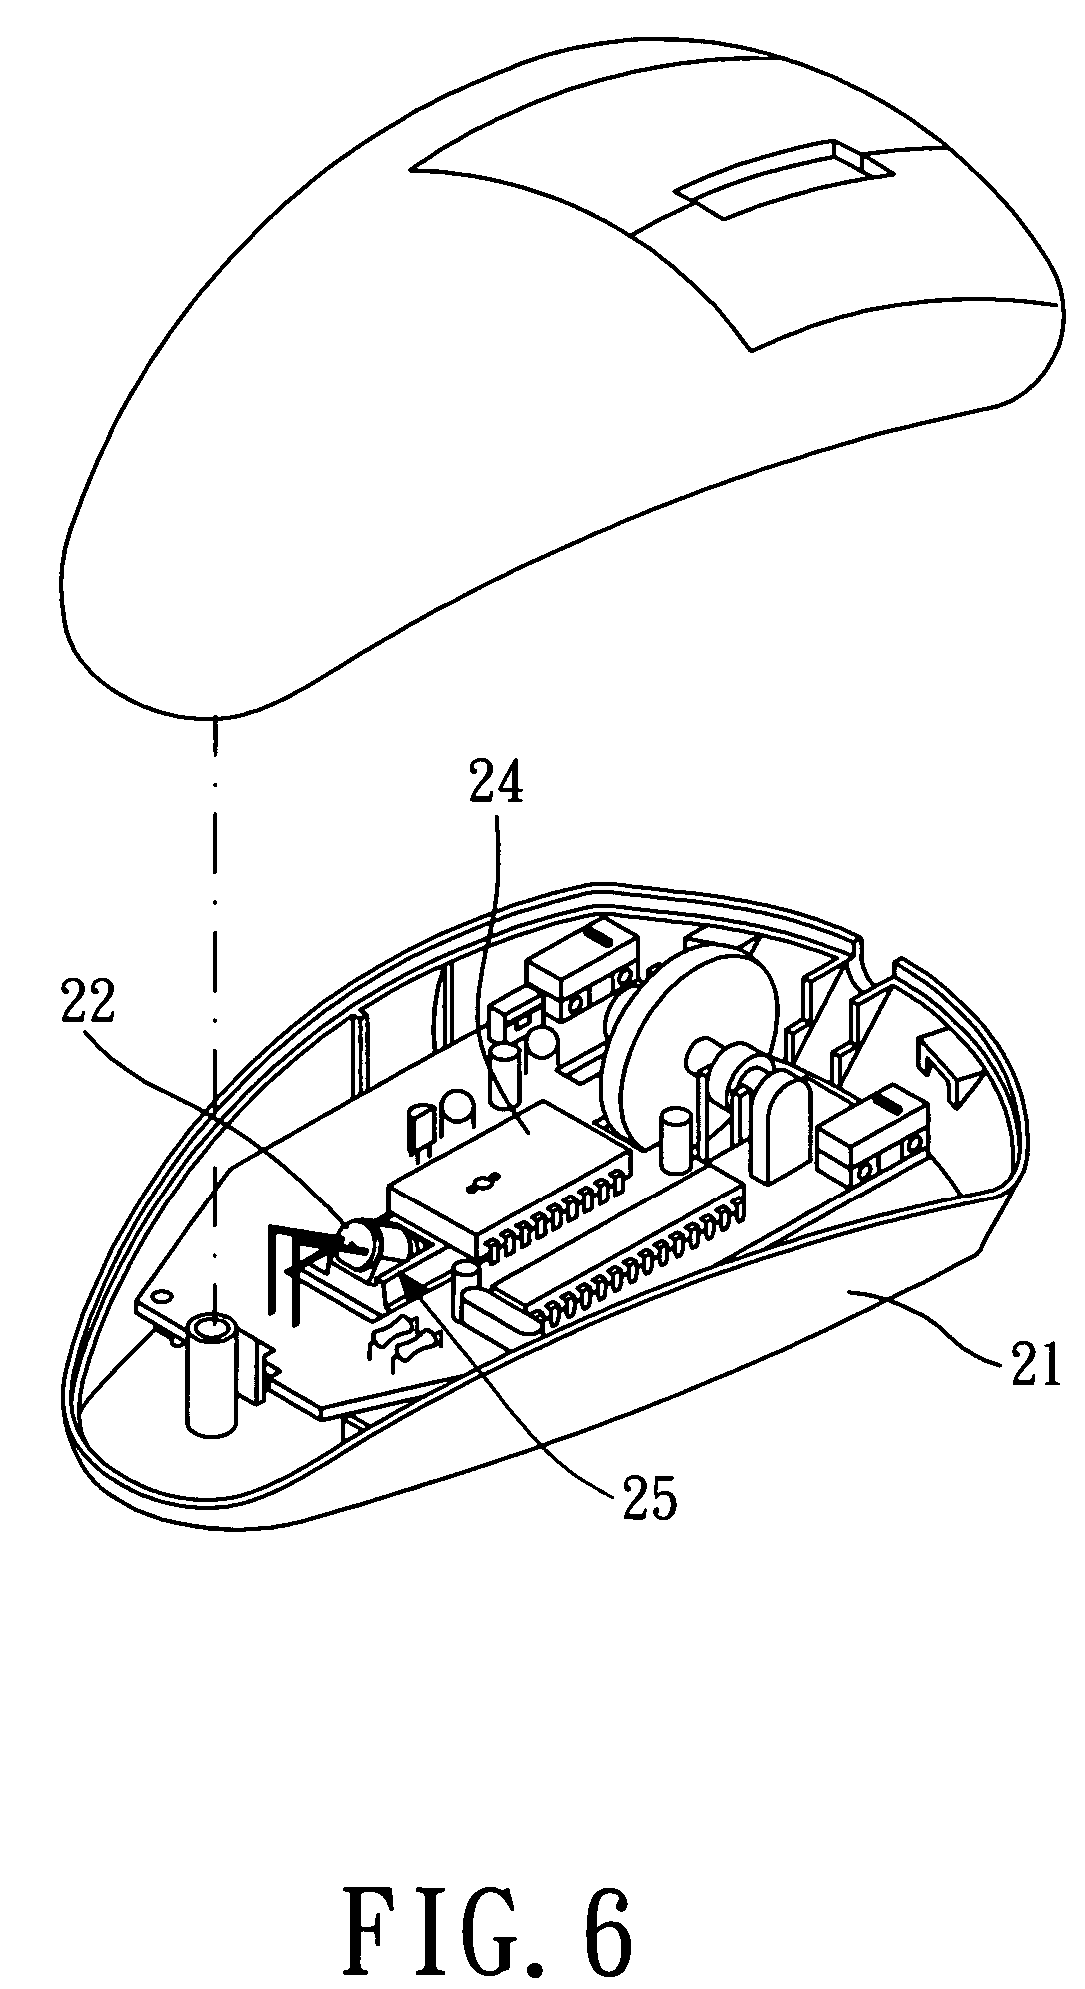 Mechanical Mouse Parts With Names